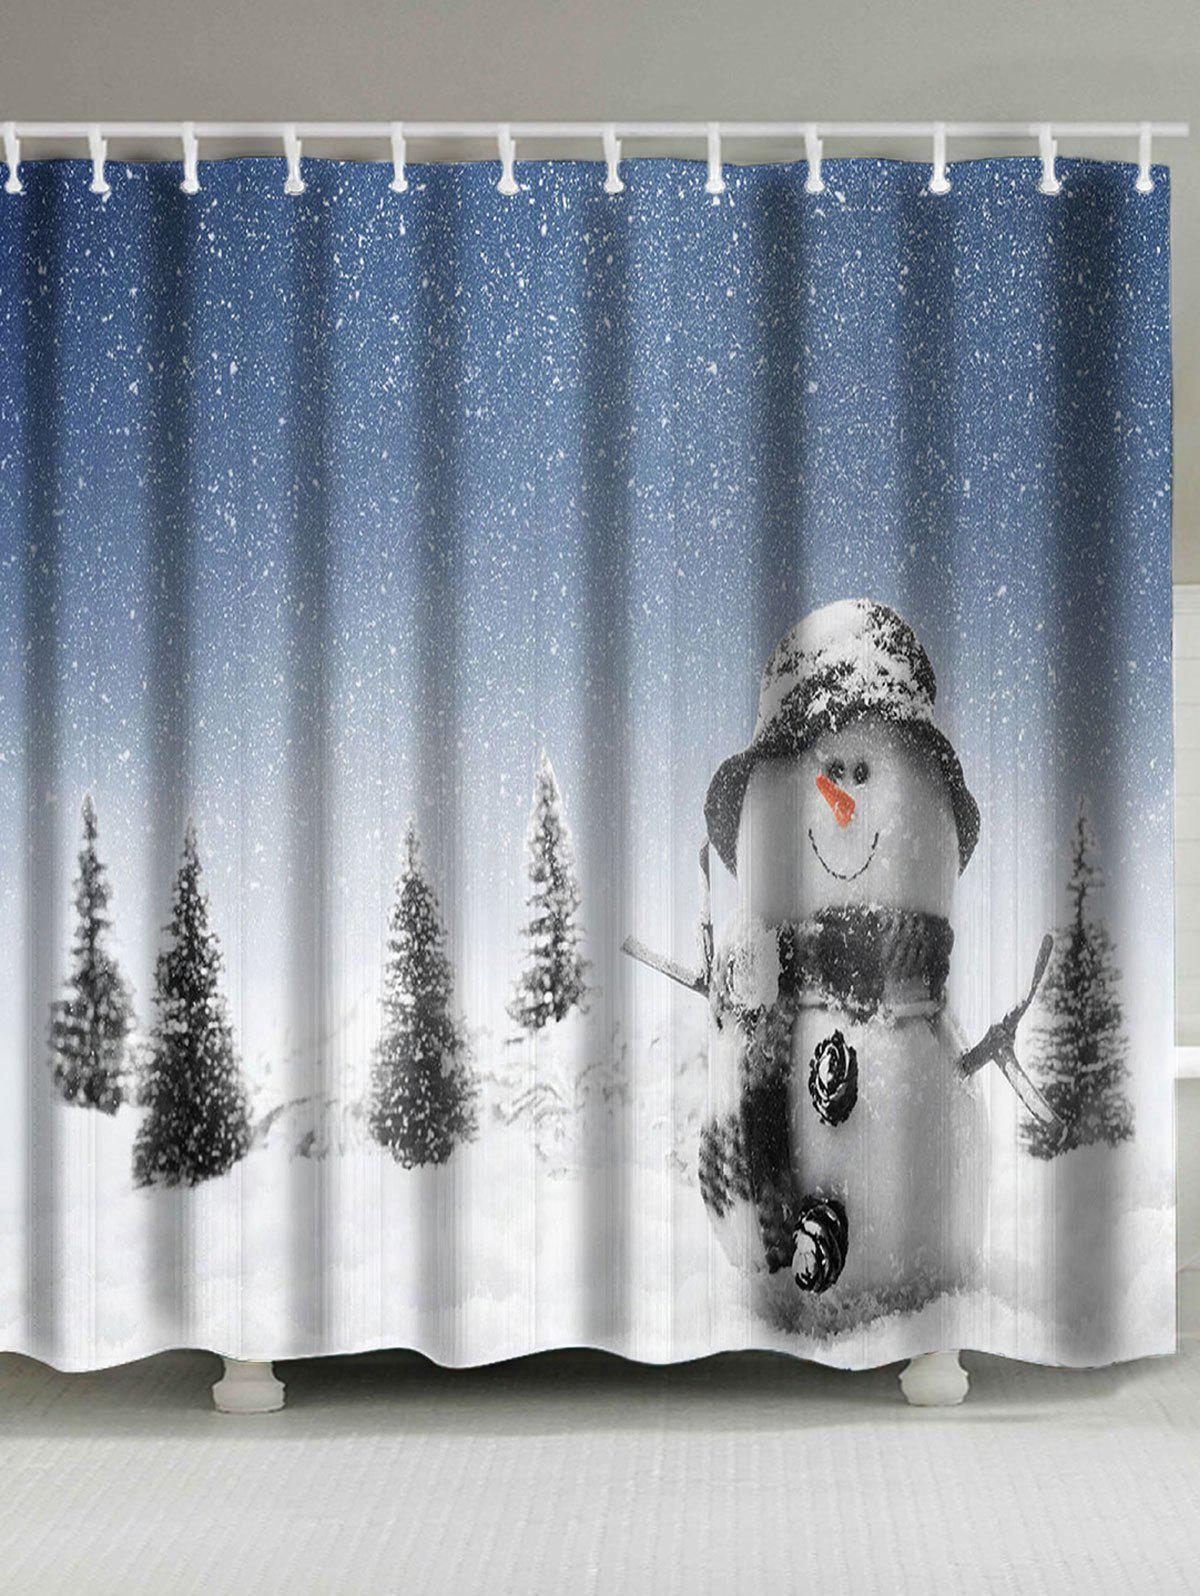 Christmas Snowman Patterned Shower Bath Curtain merry christmas snowman patterned bath shower curtain